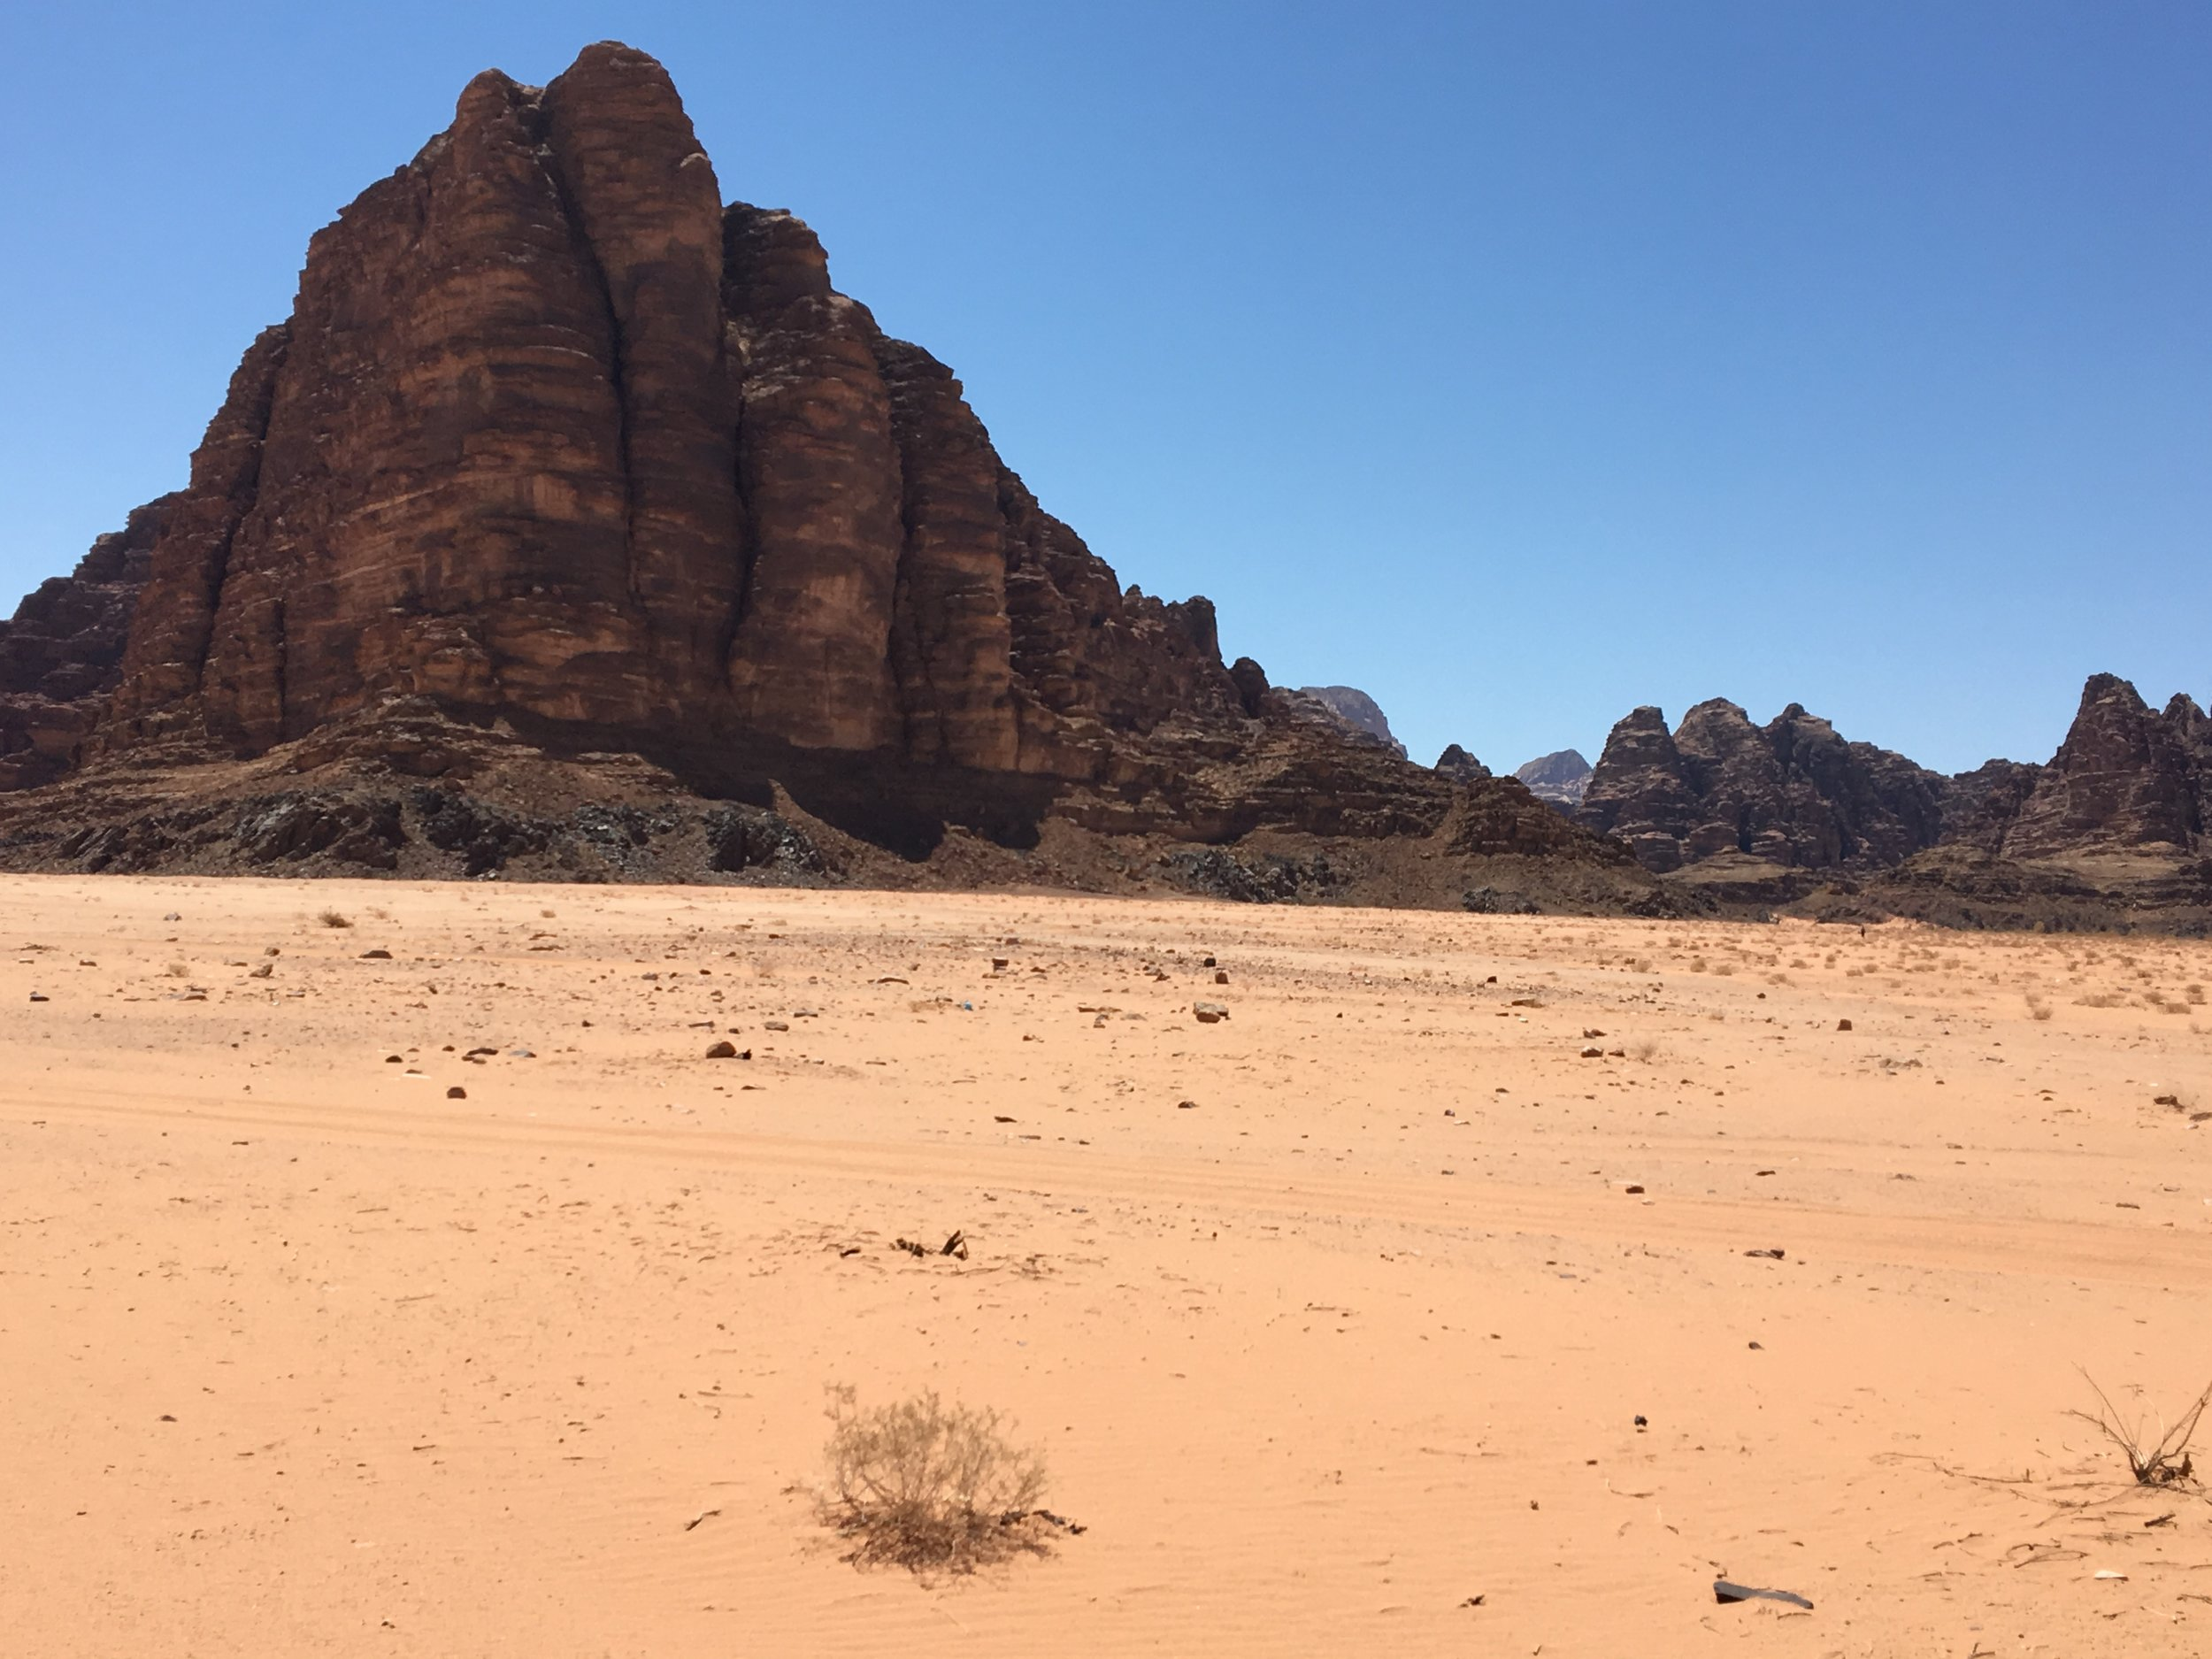 This is the mountain that was filmed in Lawrence of Arabia.